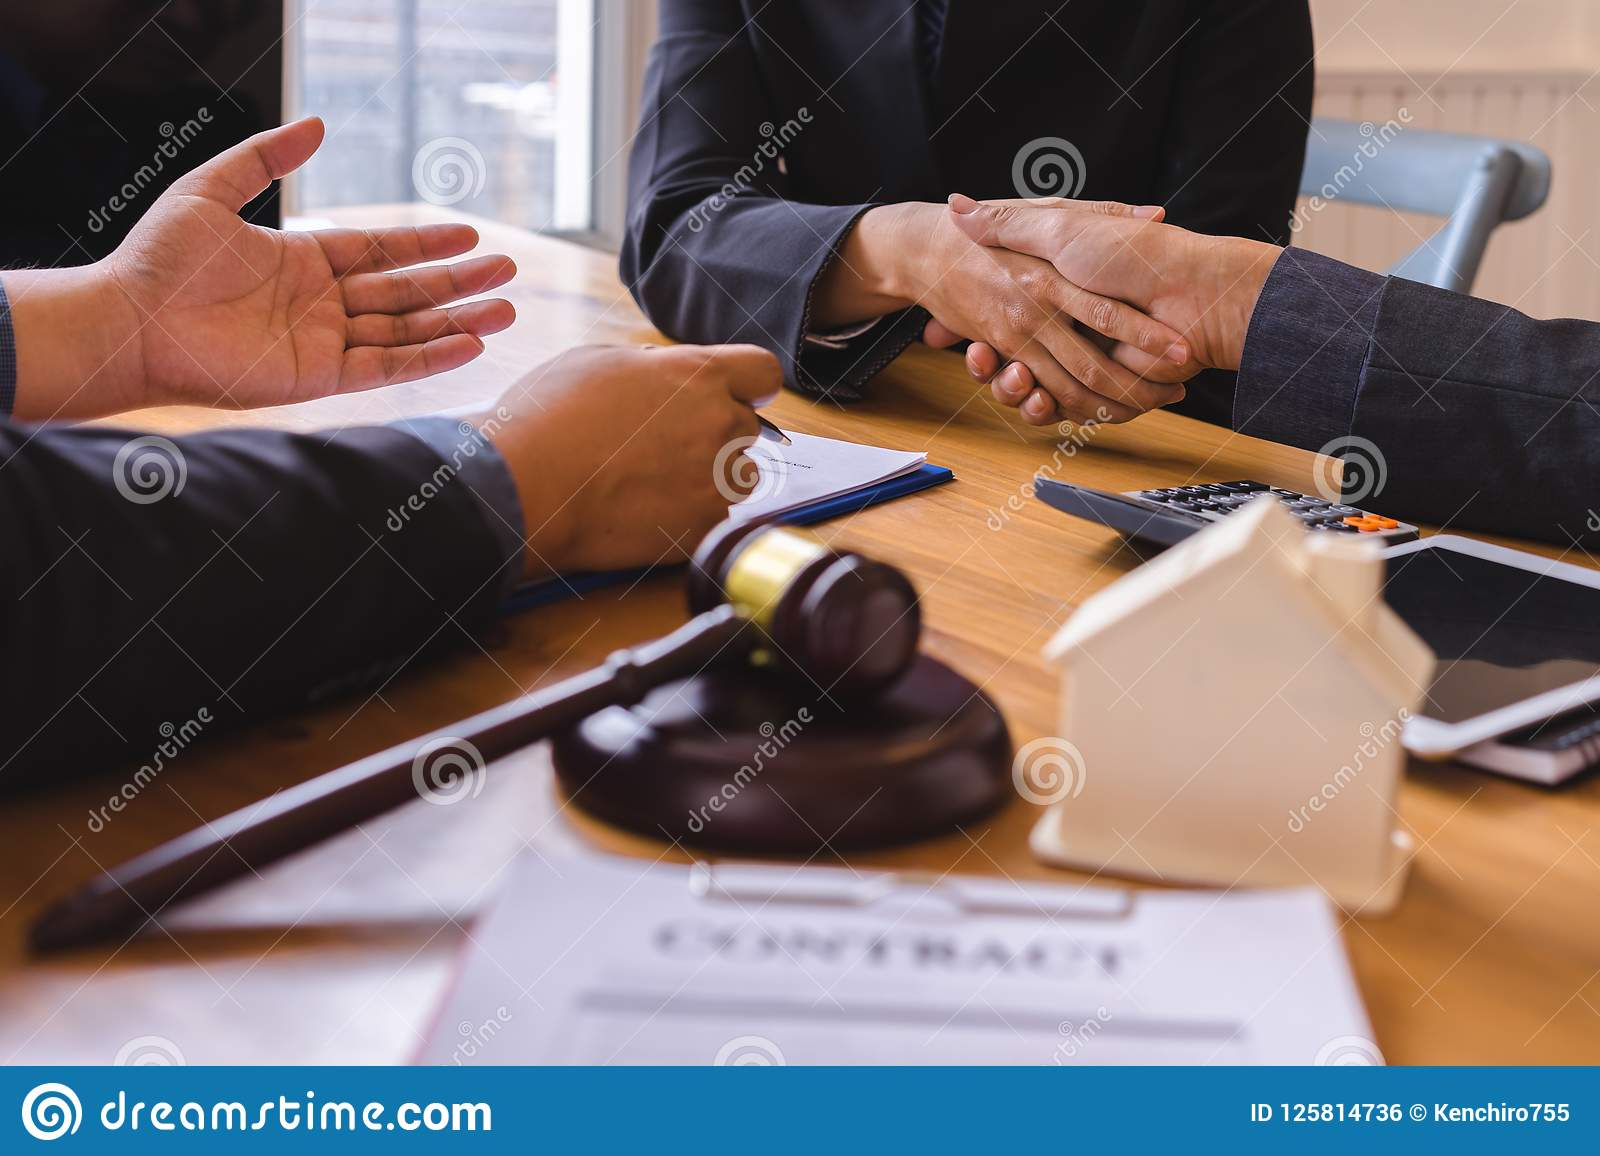 Teamwork of business legal shaking hands meeting after great meeting about Property Law